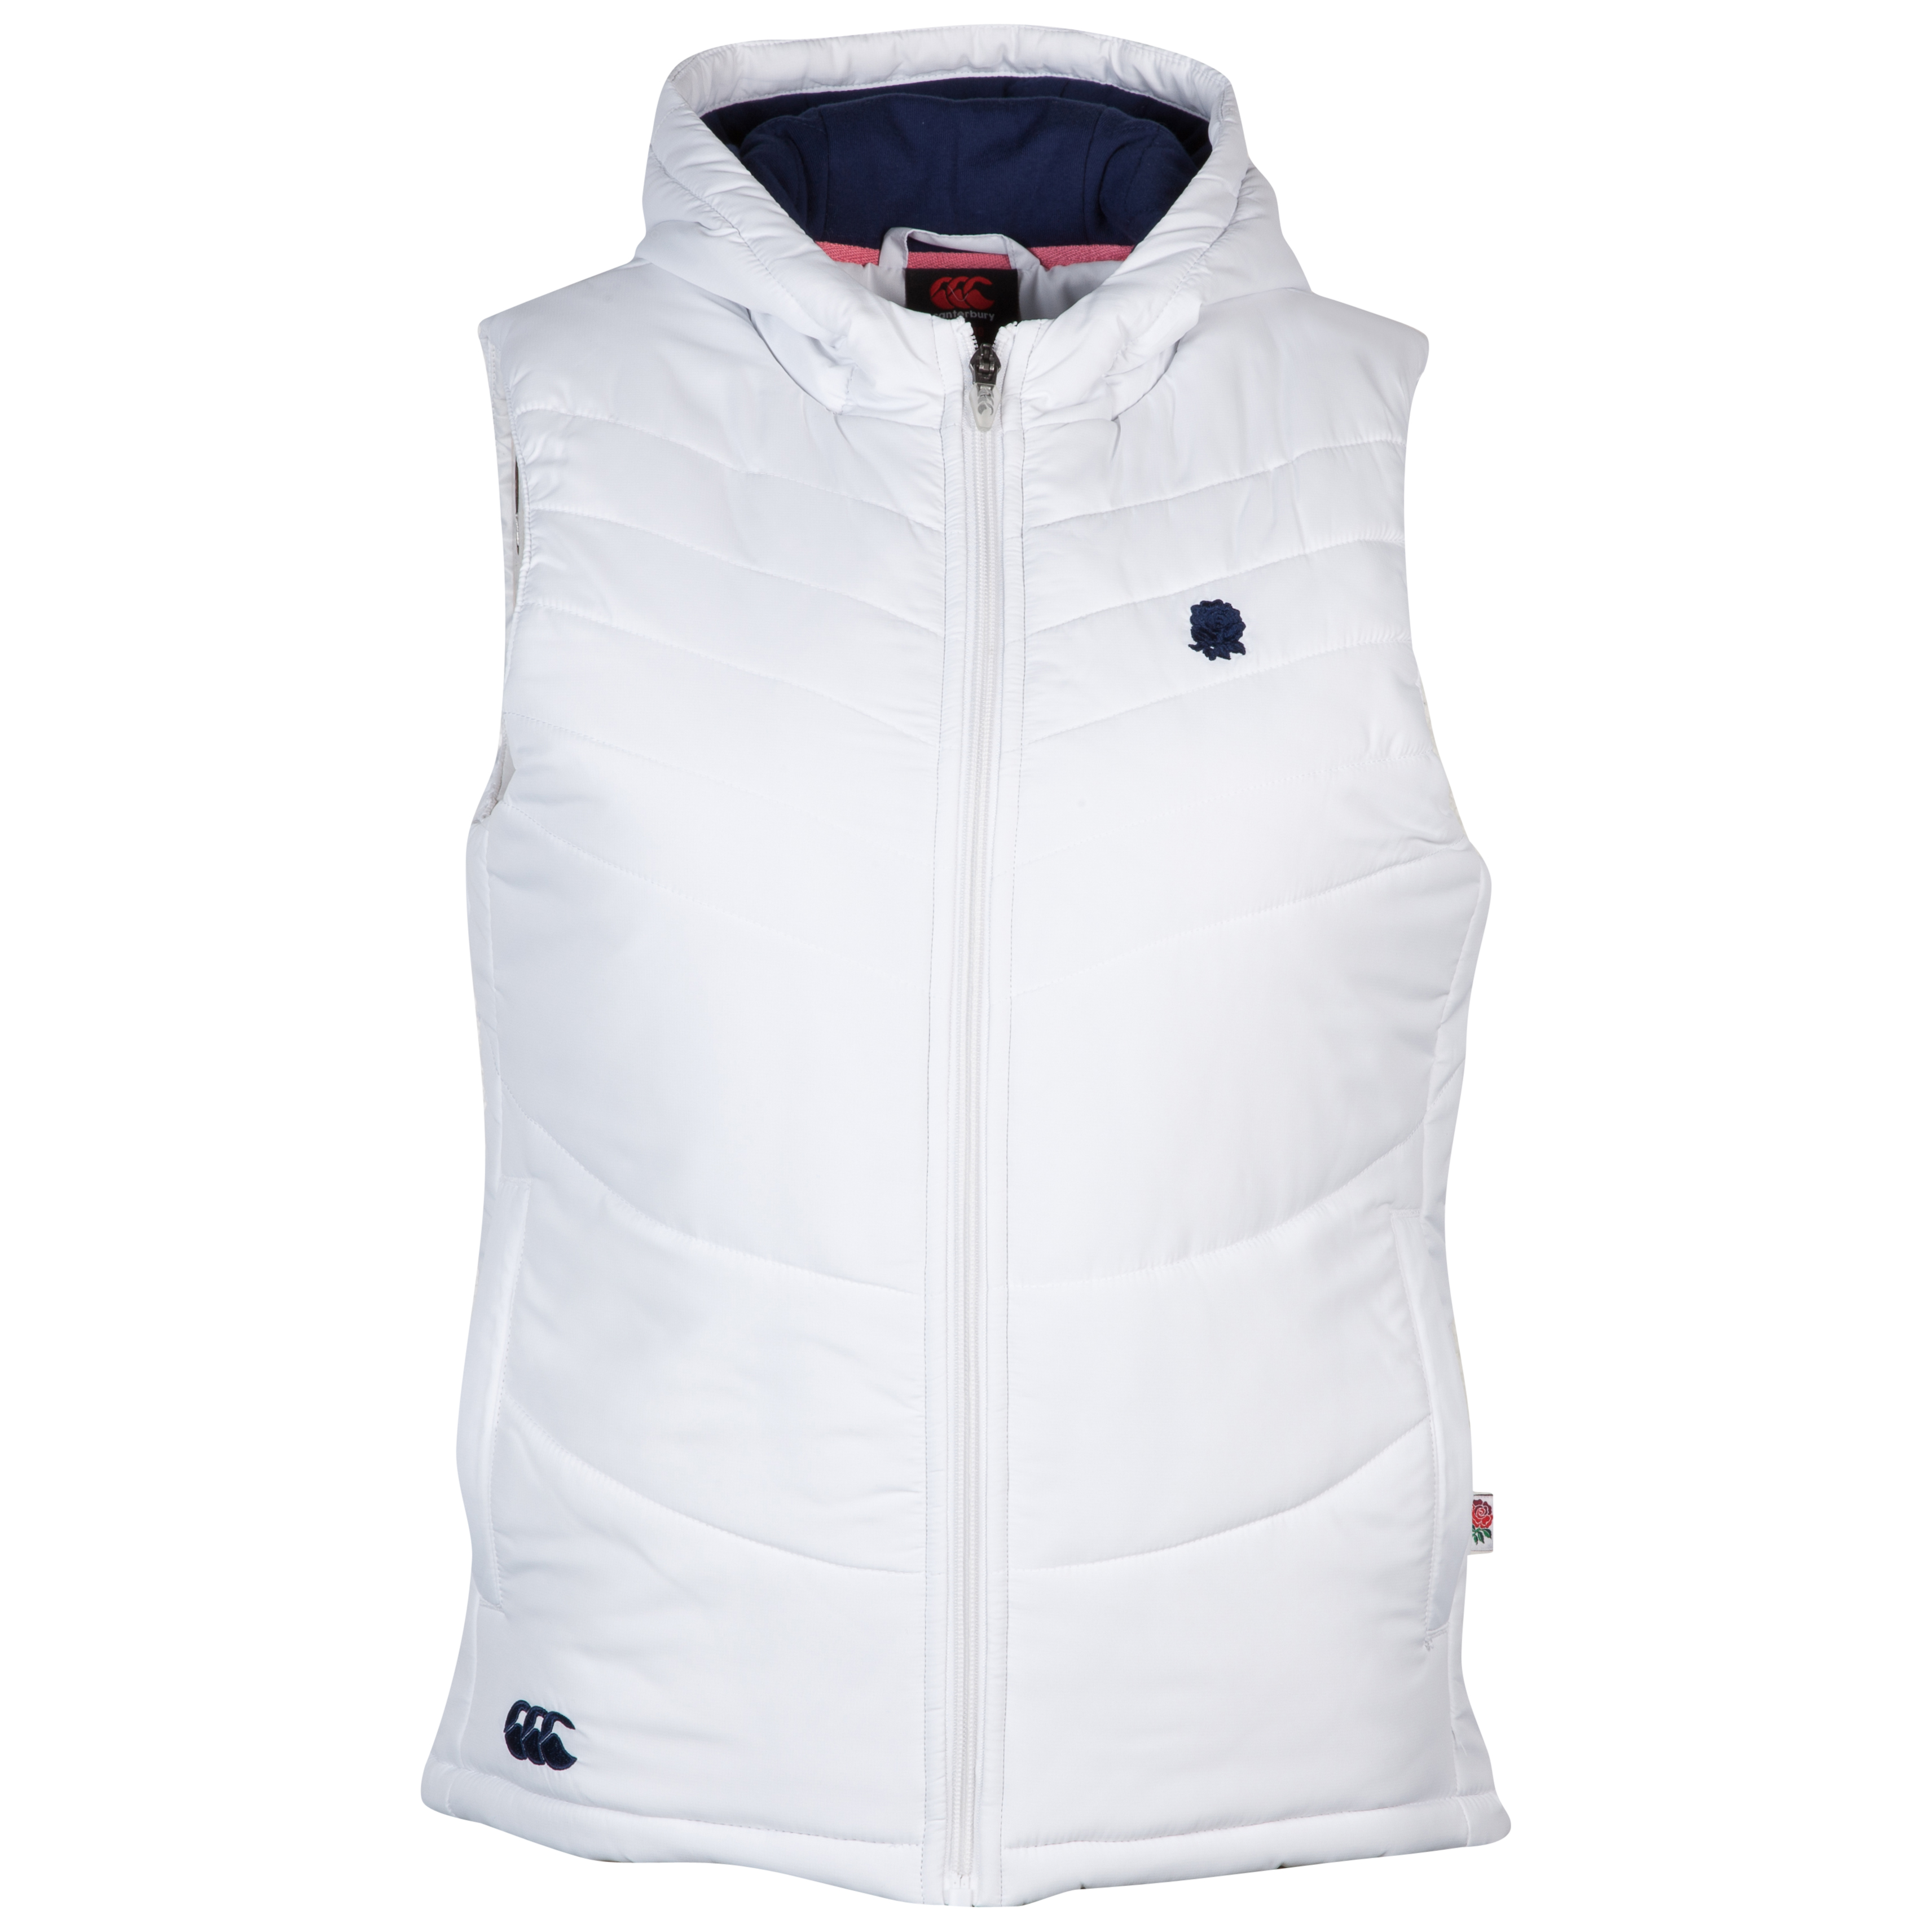 England Gilet - Womens